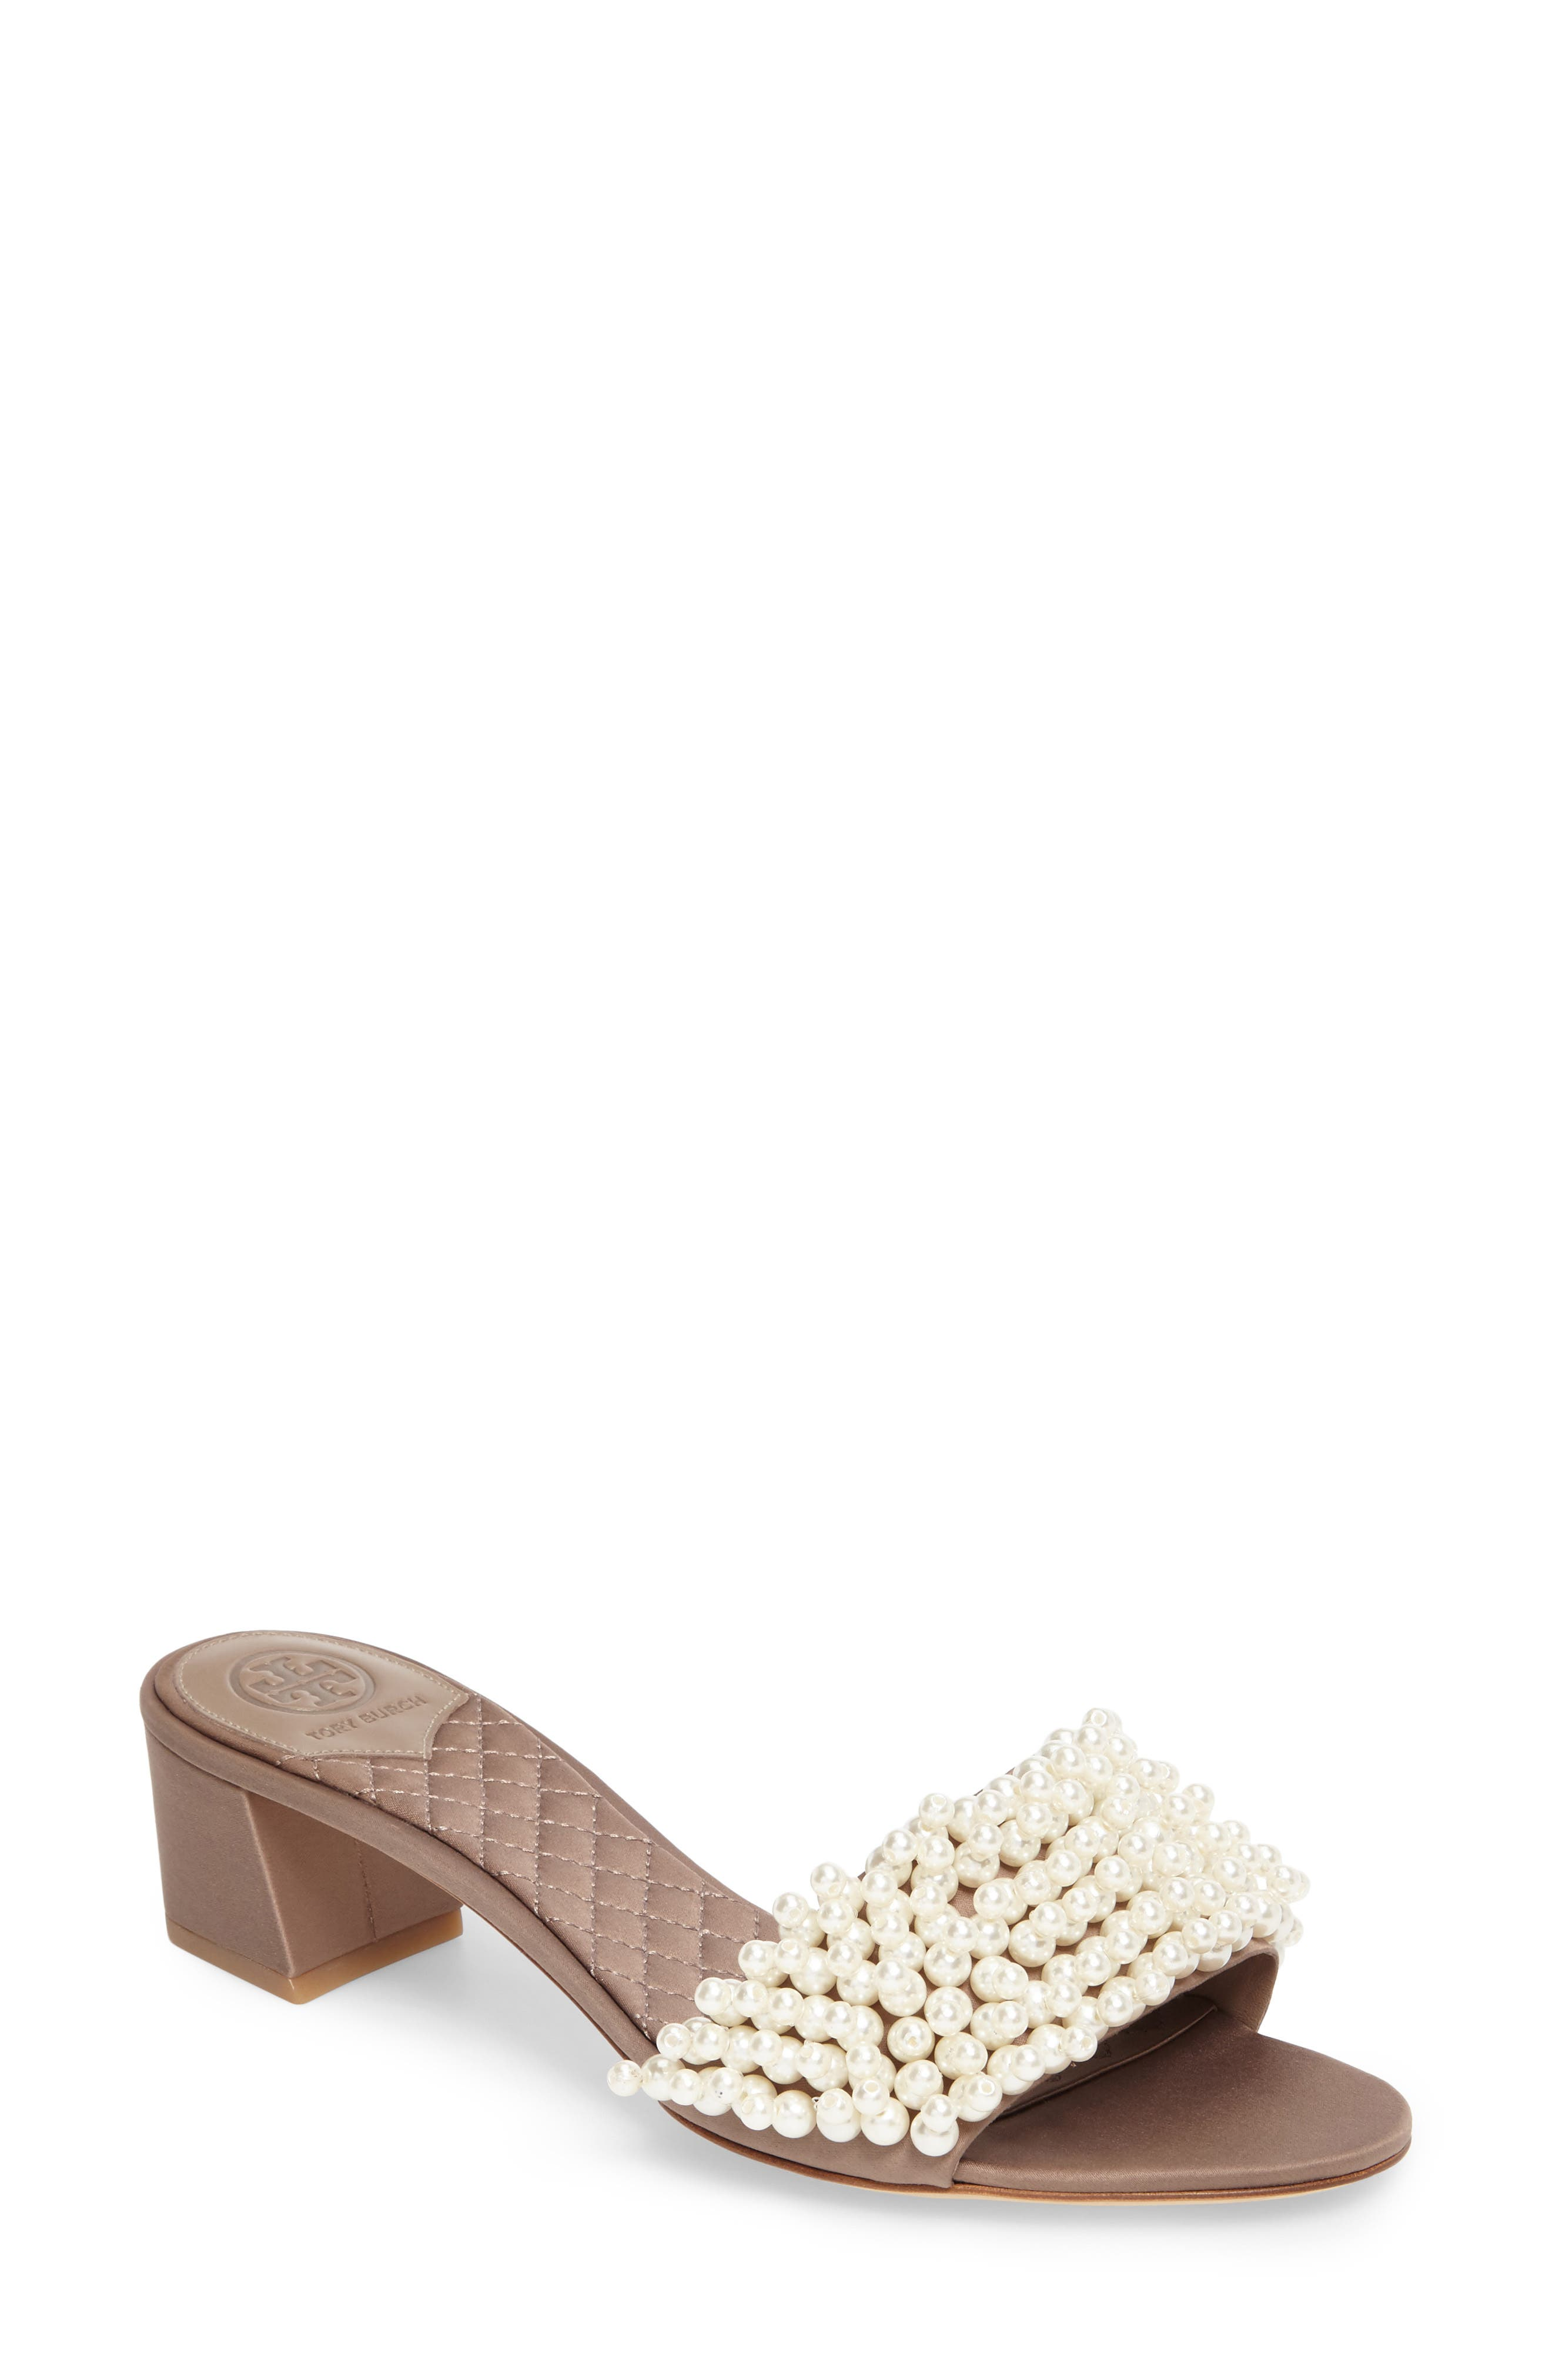 Tatiana Slide Sandal,                             Main thumbnail 1, color,                             Dust Storm